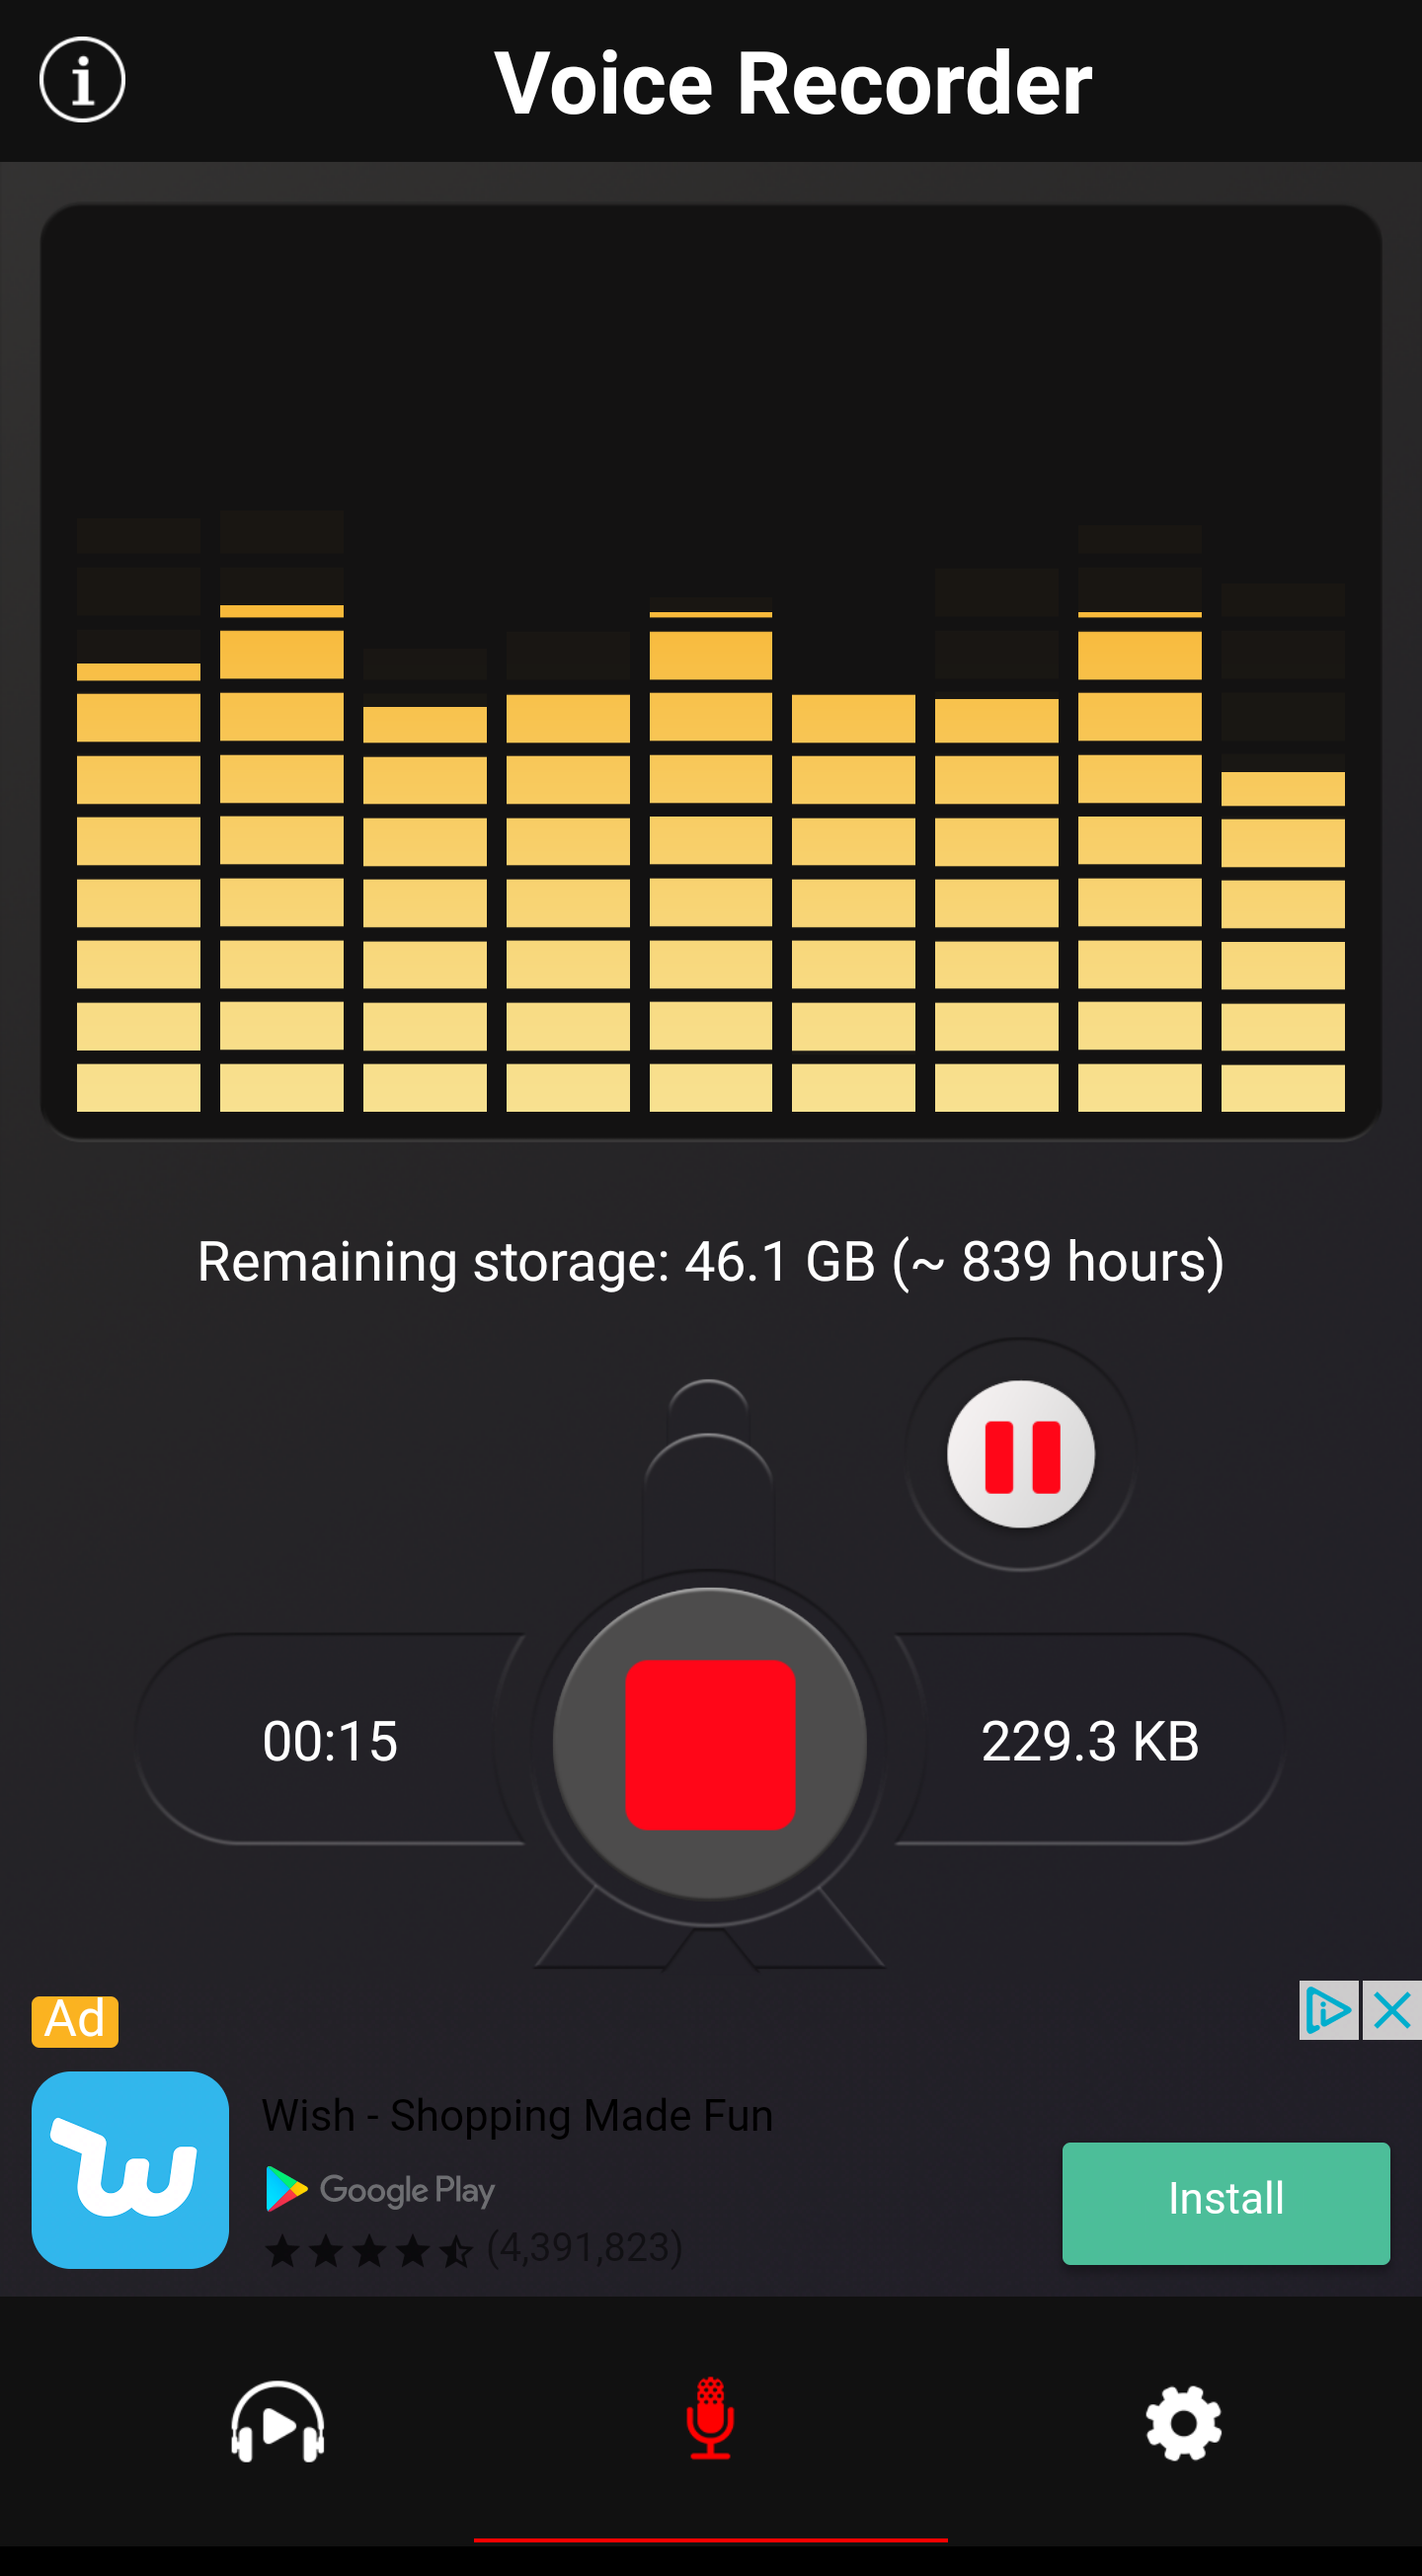 Make a voice recording on an Android phone Android phone